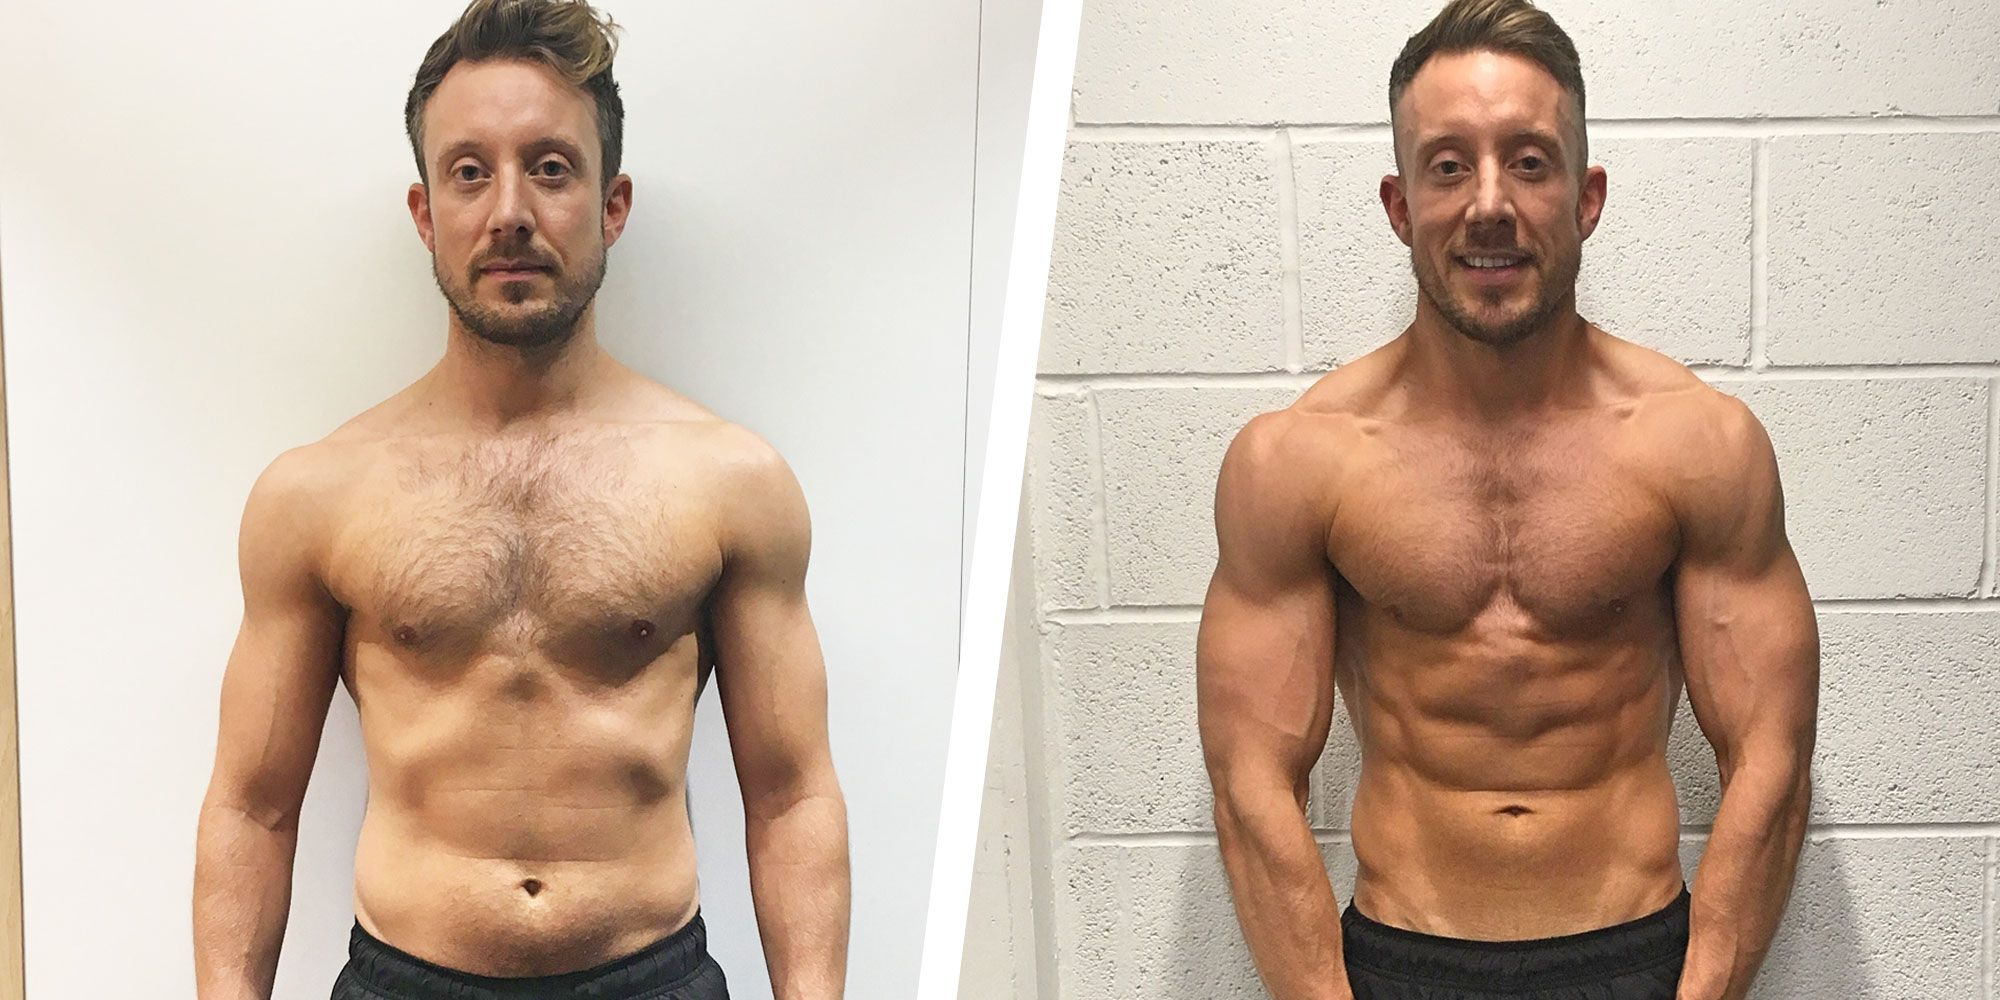 This Guy Changed Up His Diet and Workout Routine and Got Ripped